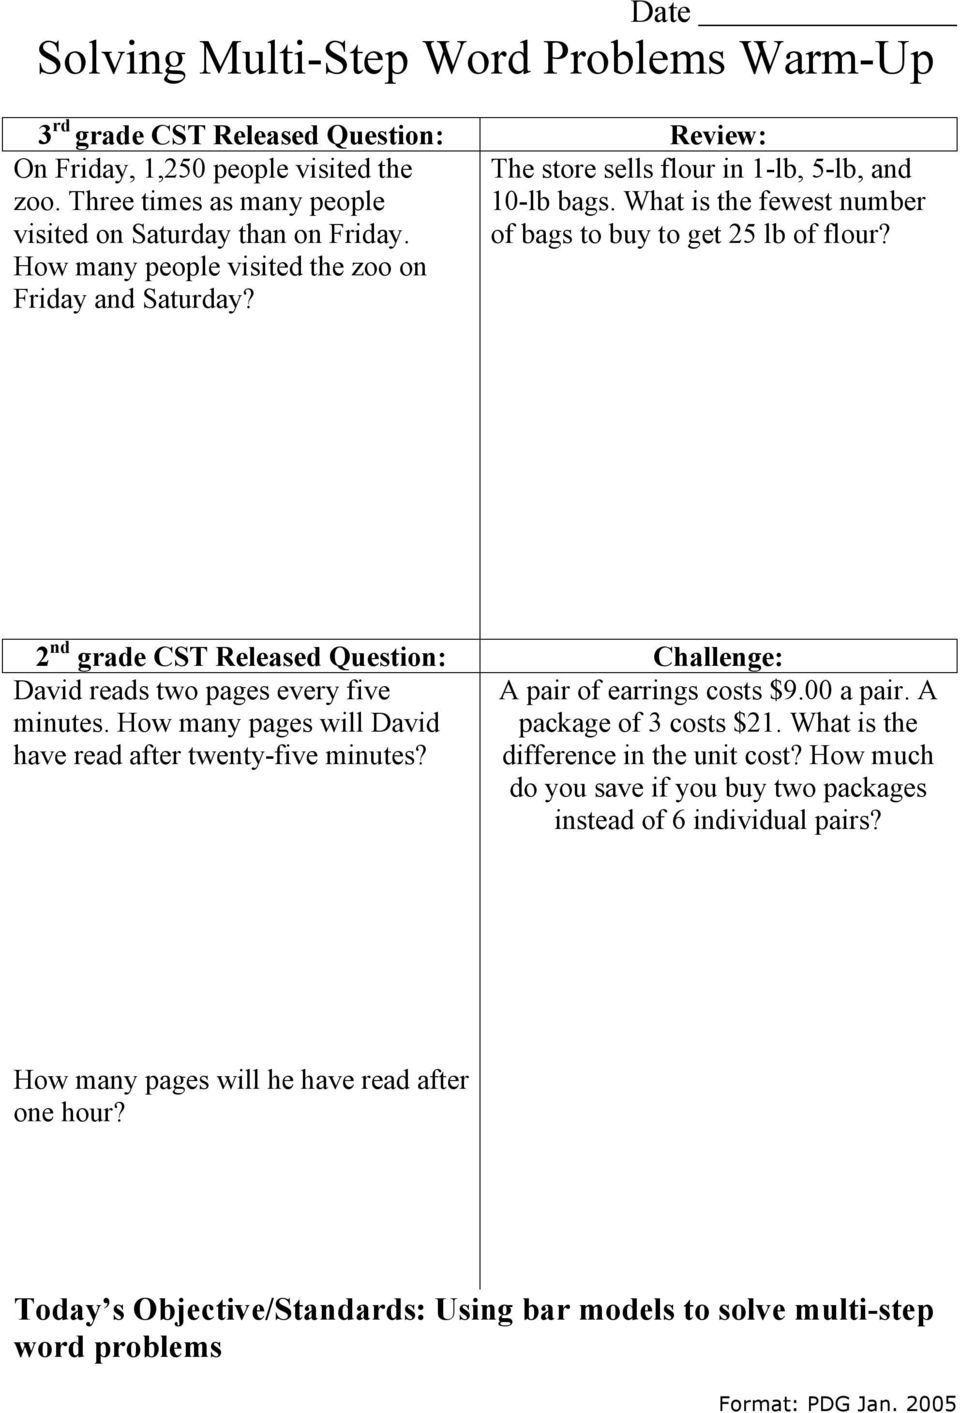 hight resolution of Date Solving Multi-Step Word Problems Warm-Up - PDF Free Download